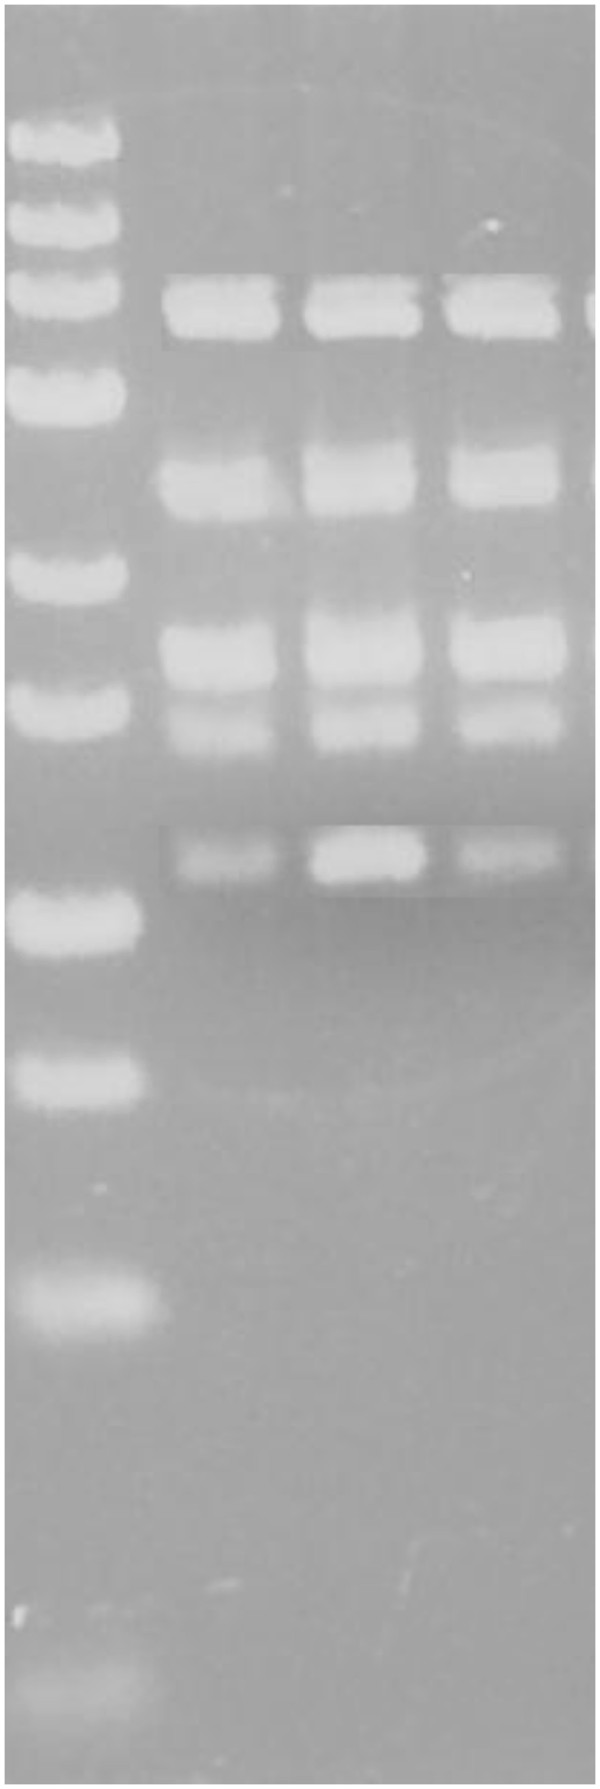 Agarose gel with PCR–RFLP products for analysis of MTHFR 677 C > T and eNOS +894 G > T and eNOS −786 T > C . Lane 1 contains Fermentas O' GeneRuler® Ultra Low Range DNA Ladder (25 bp - 700 bp); Lanes 2, 3 and 4 contain multiplex PCR-RFLP products digested with 1 U of NEB® BanII restriction enzyme (NEB®, England), 1 U Fermentas Fast Digest® HinfI restriction enzyme (Fermentas, Lithuania) and 1 U Fermentas Fast Digest® MspI restriction enzyme (Fermentas, Lithuania), respectively. The band sizes were 371 bp, 248 bp, 178 bp, 130 bp and 118 bp for all lanes. This indicates that the sample is a TT genotype for MTHFR 677 C > T, GG genotype for eNOS +894 G > T , and TT genotype for eNOS −786 T > C.